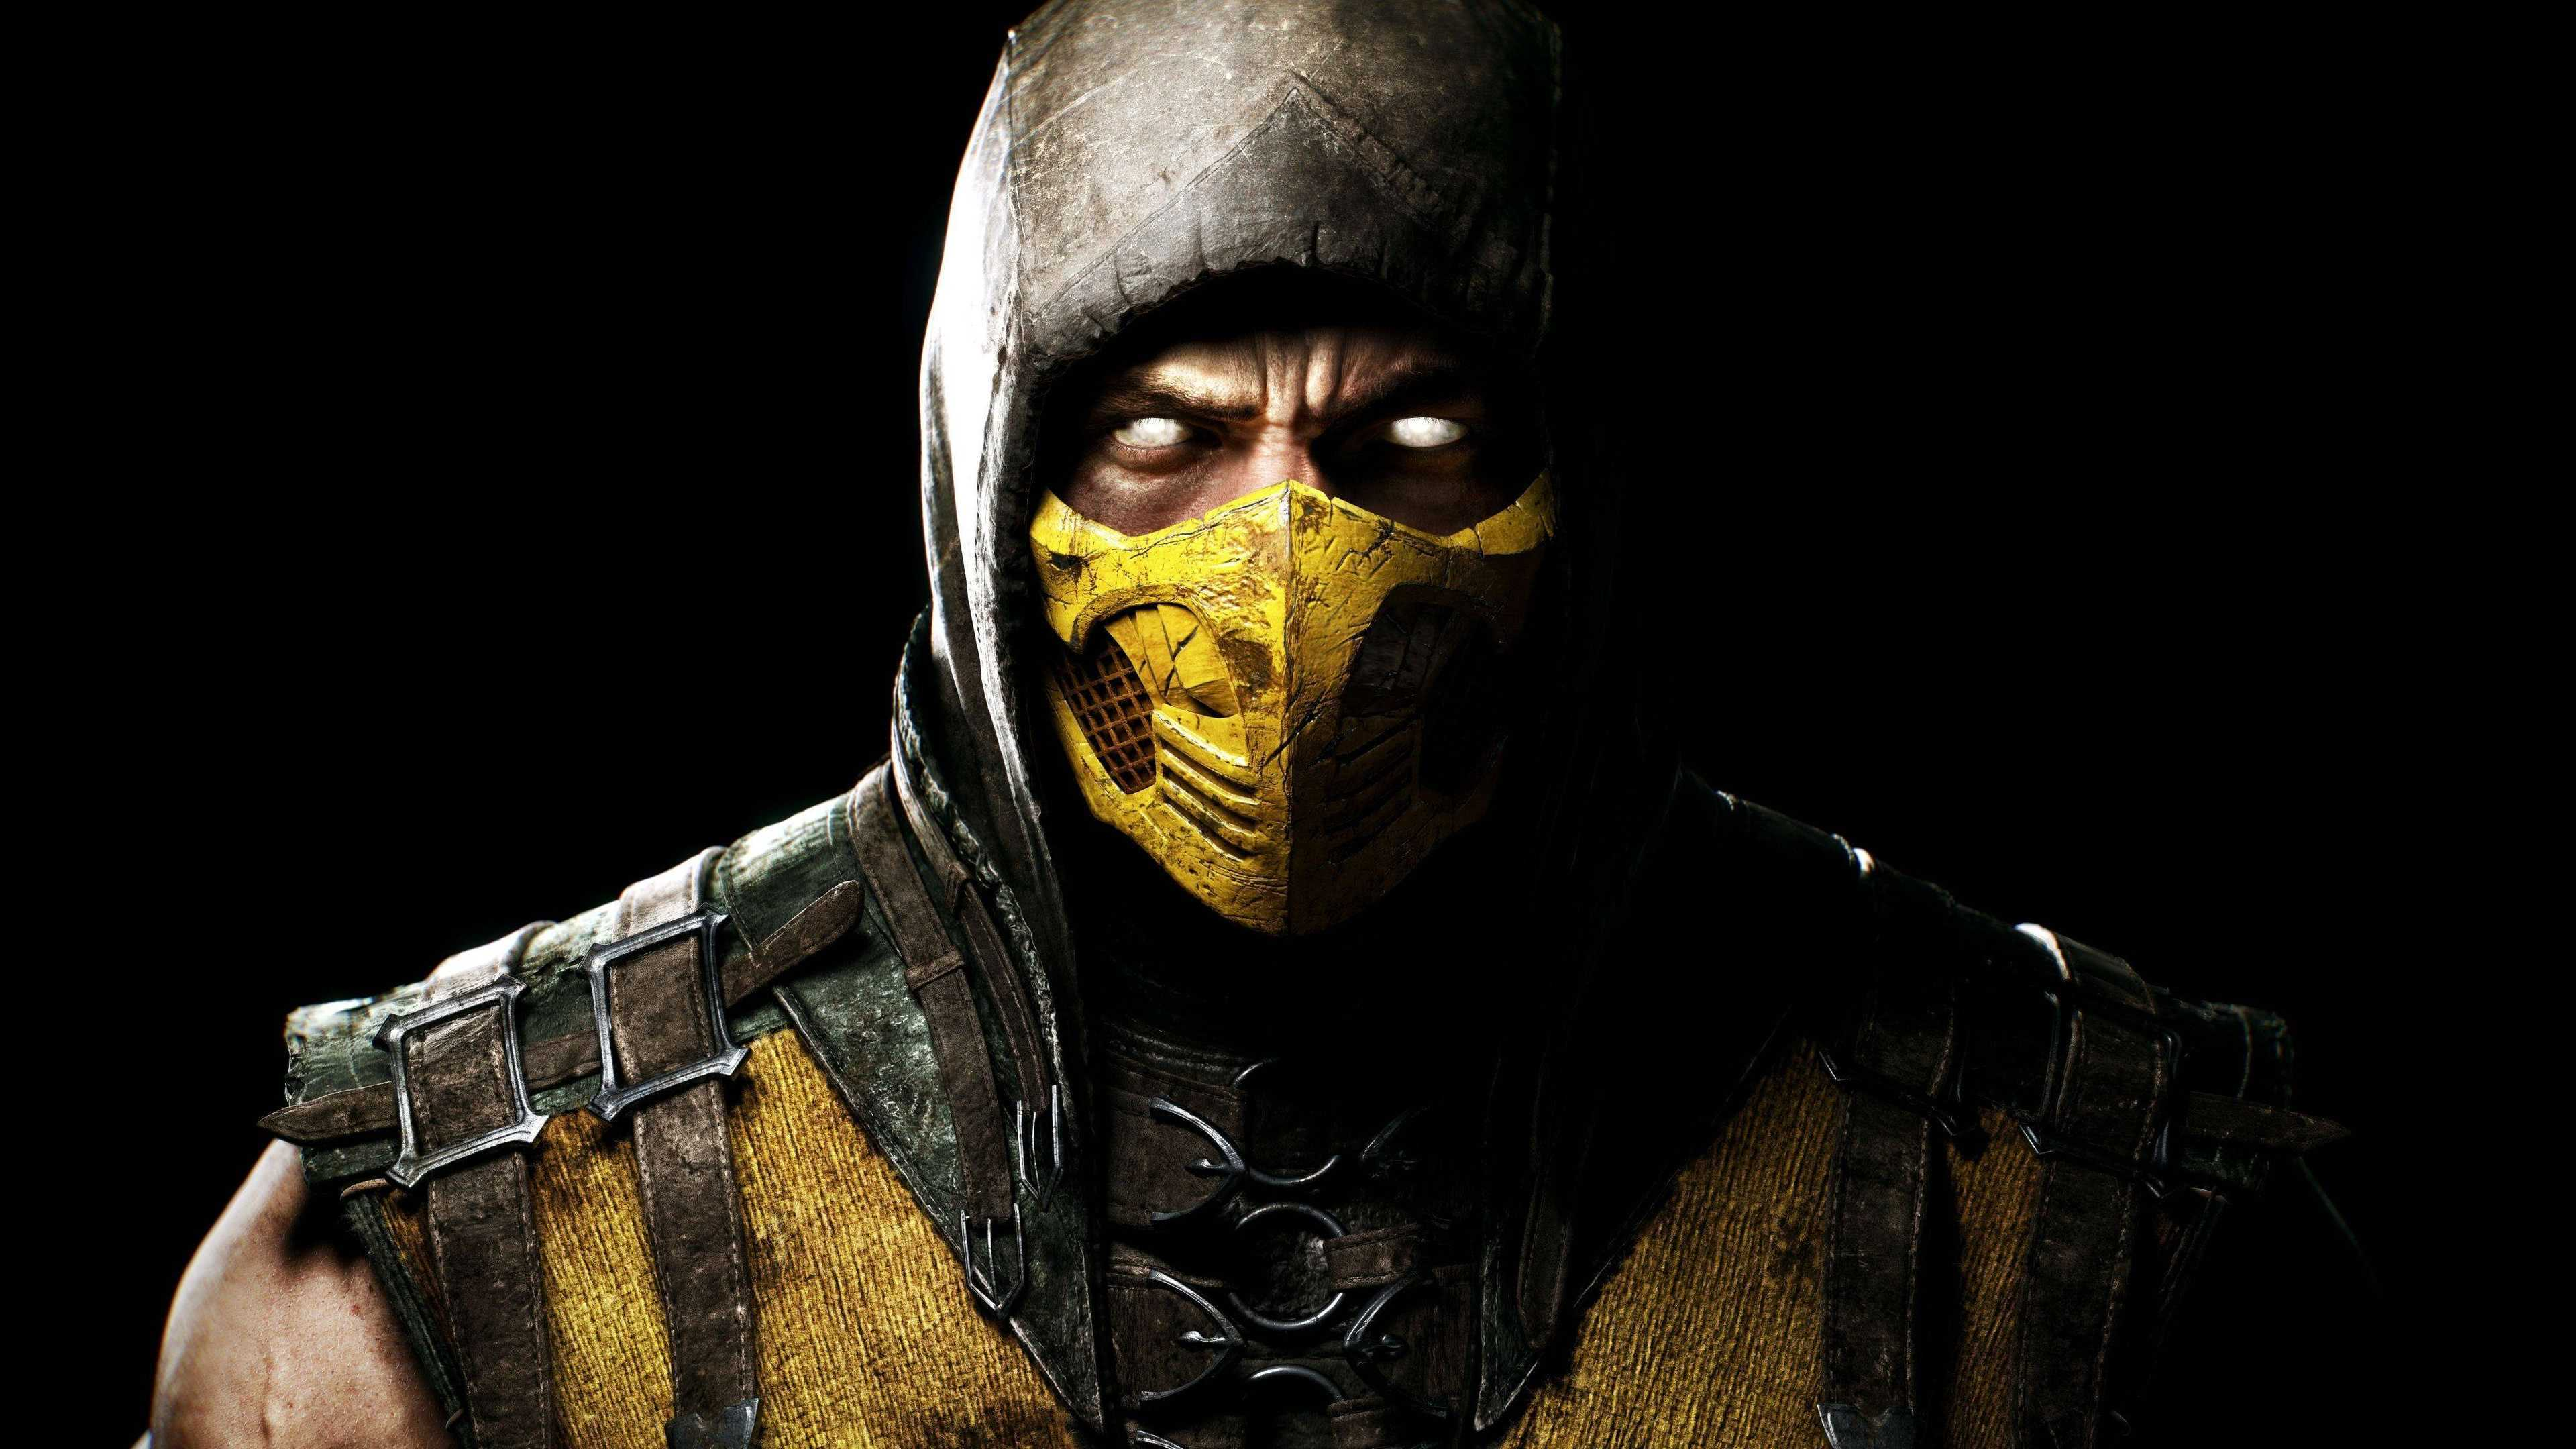 Mortal kombat x scorpion uhd 4k wallpaper pixelz - Mortal kombat scorpion wallpaper ...